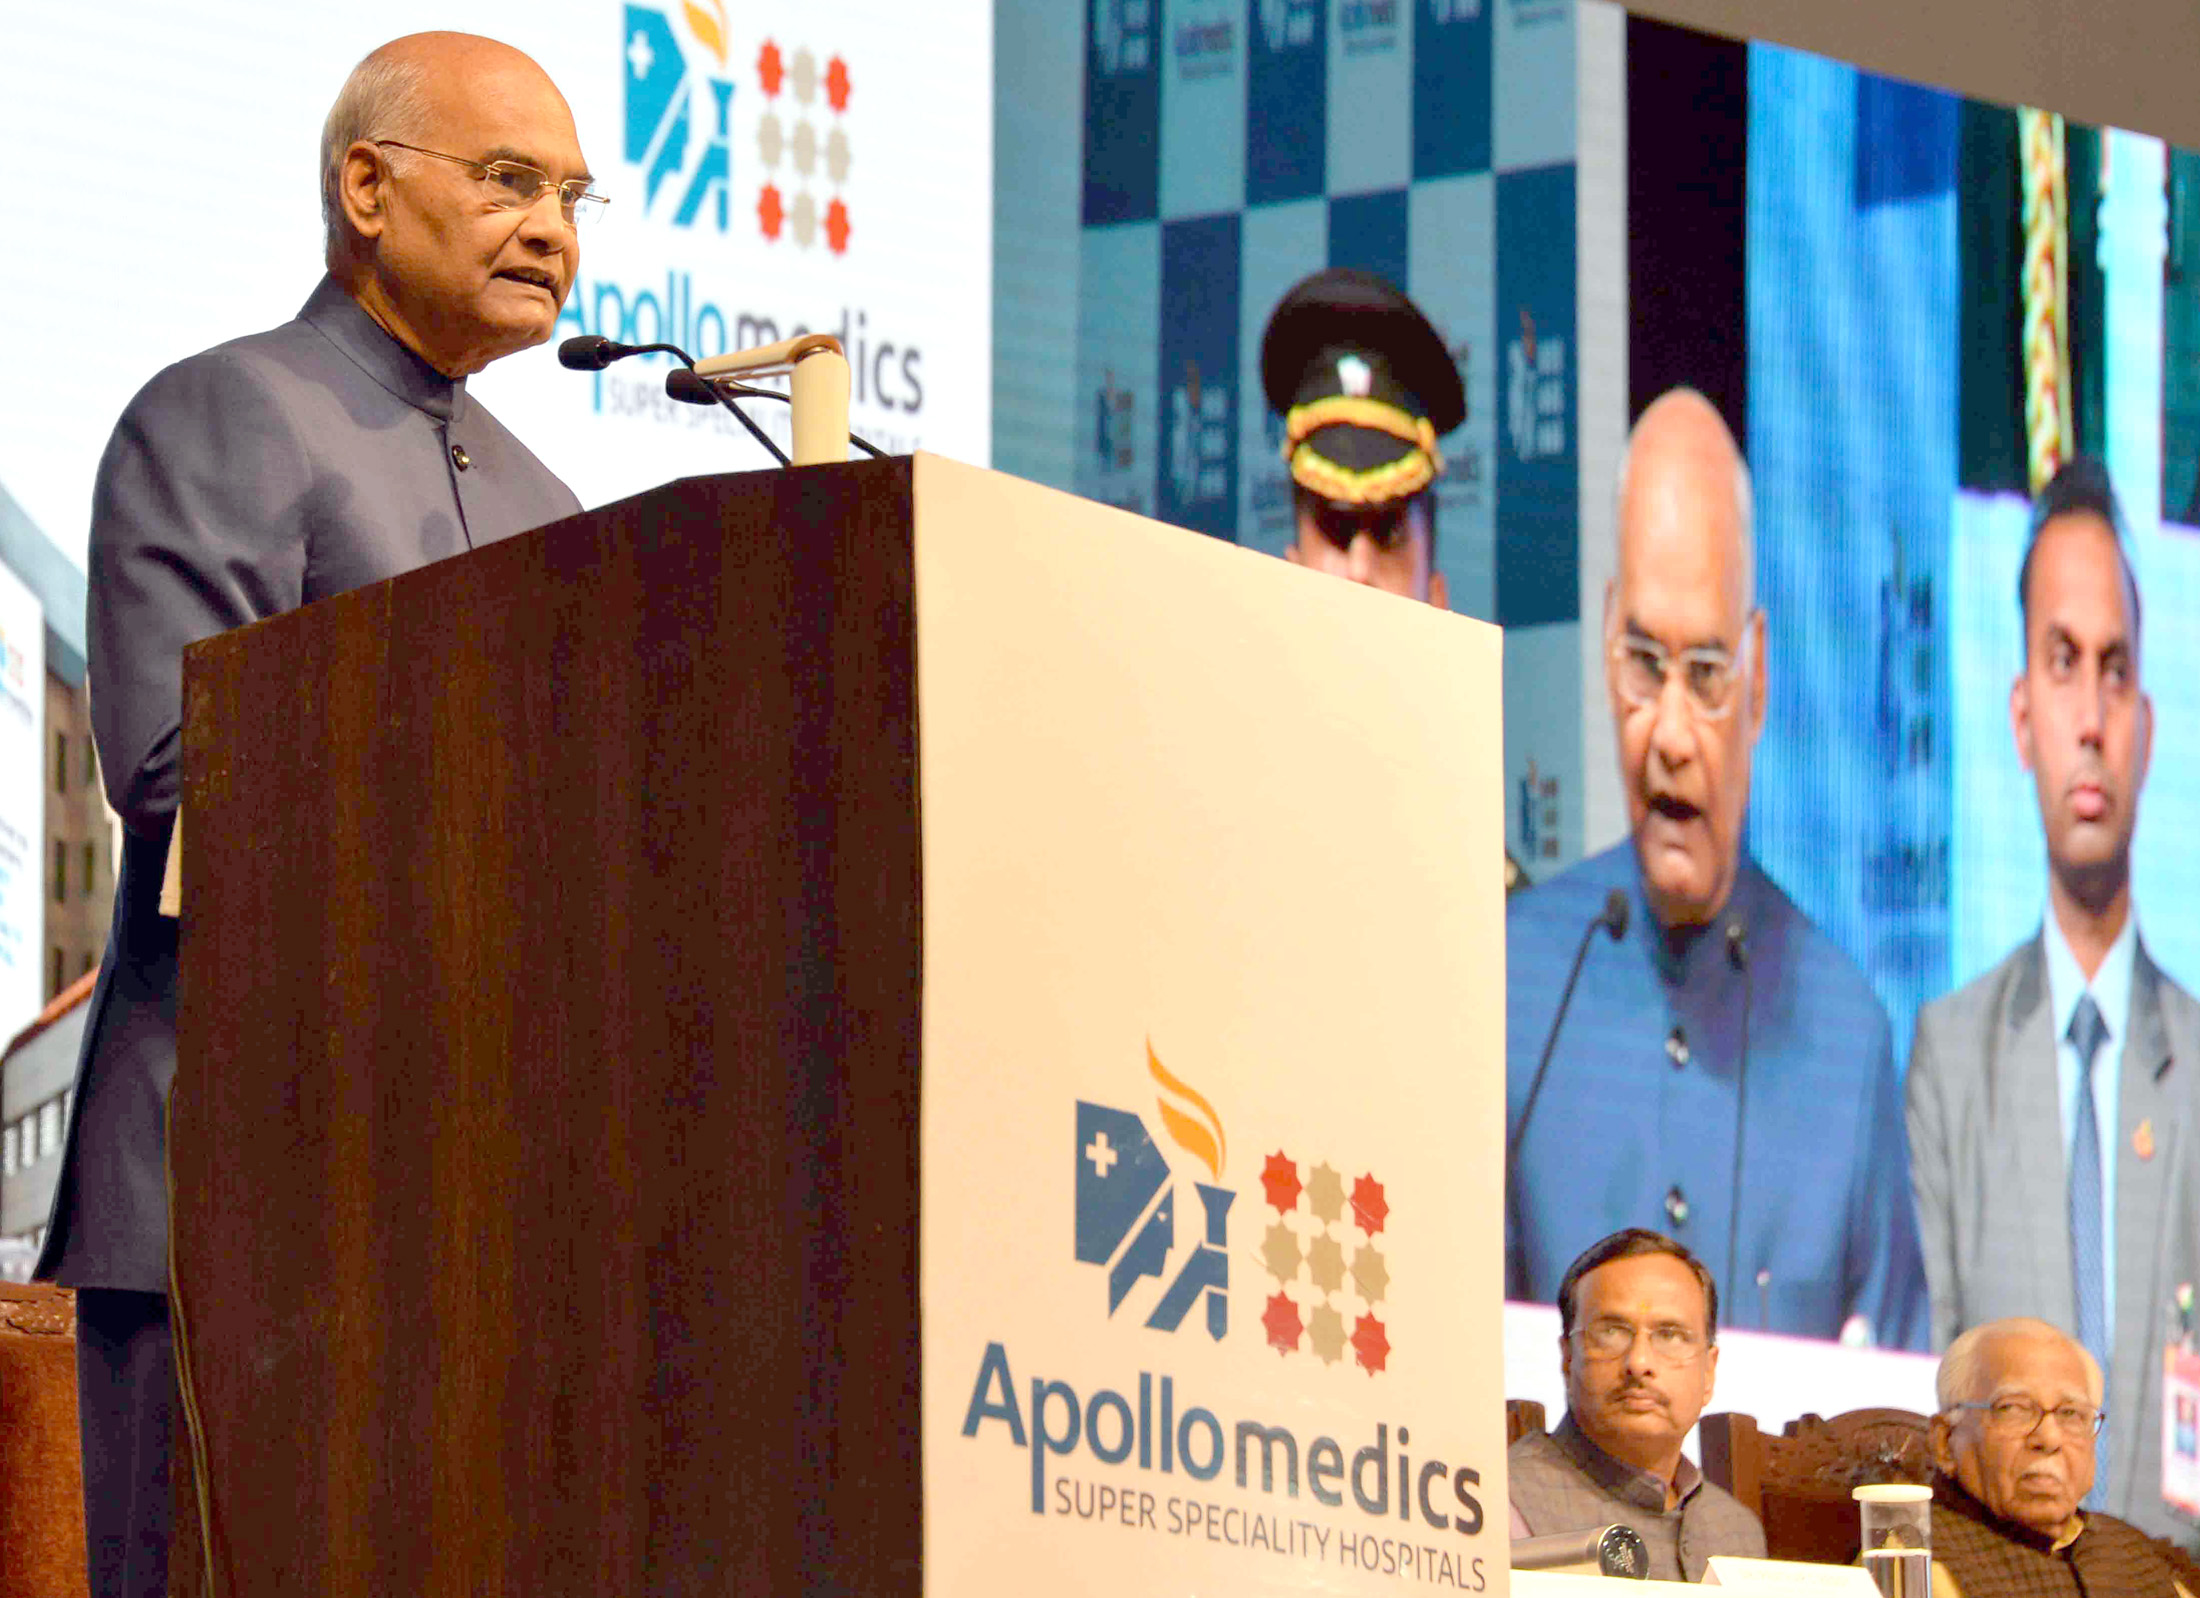 330 bedded Super Specialty Apollo Hospital inaugurated at Lucknow